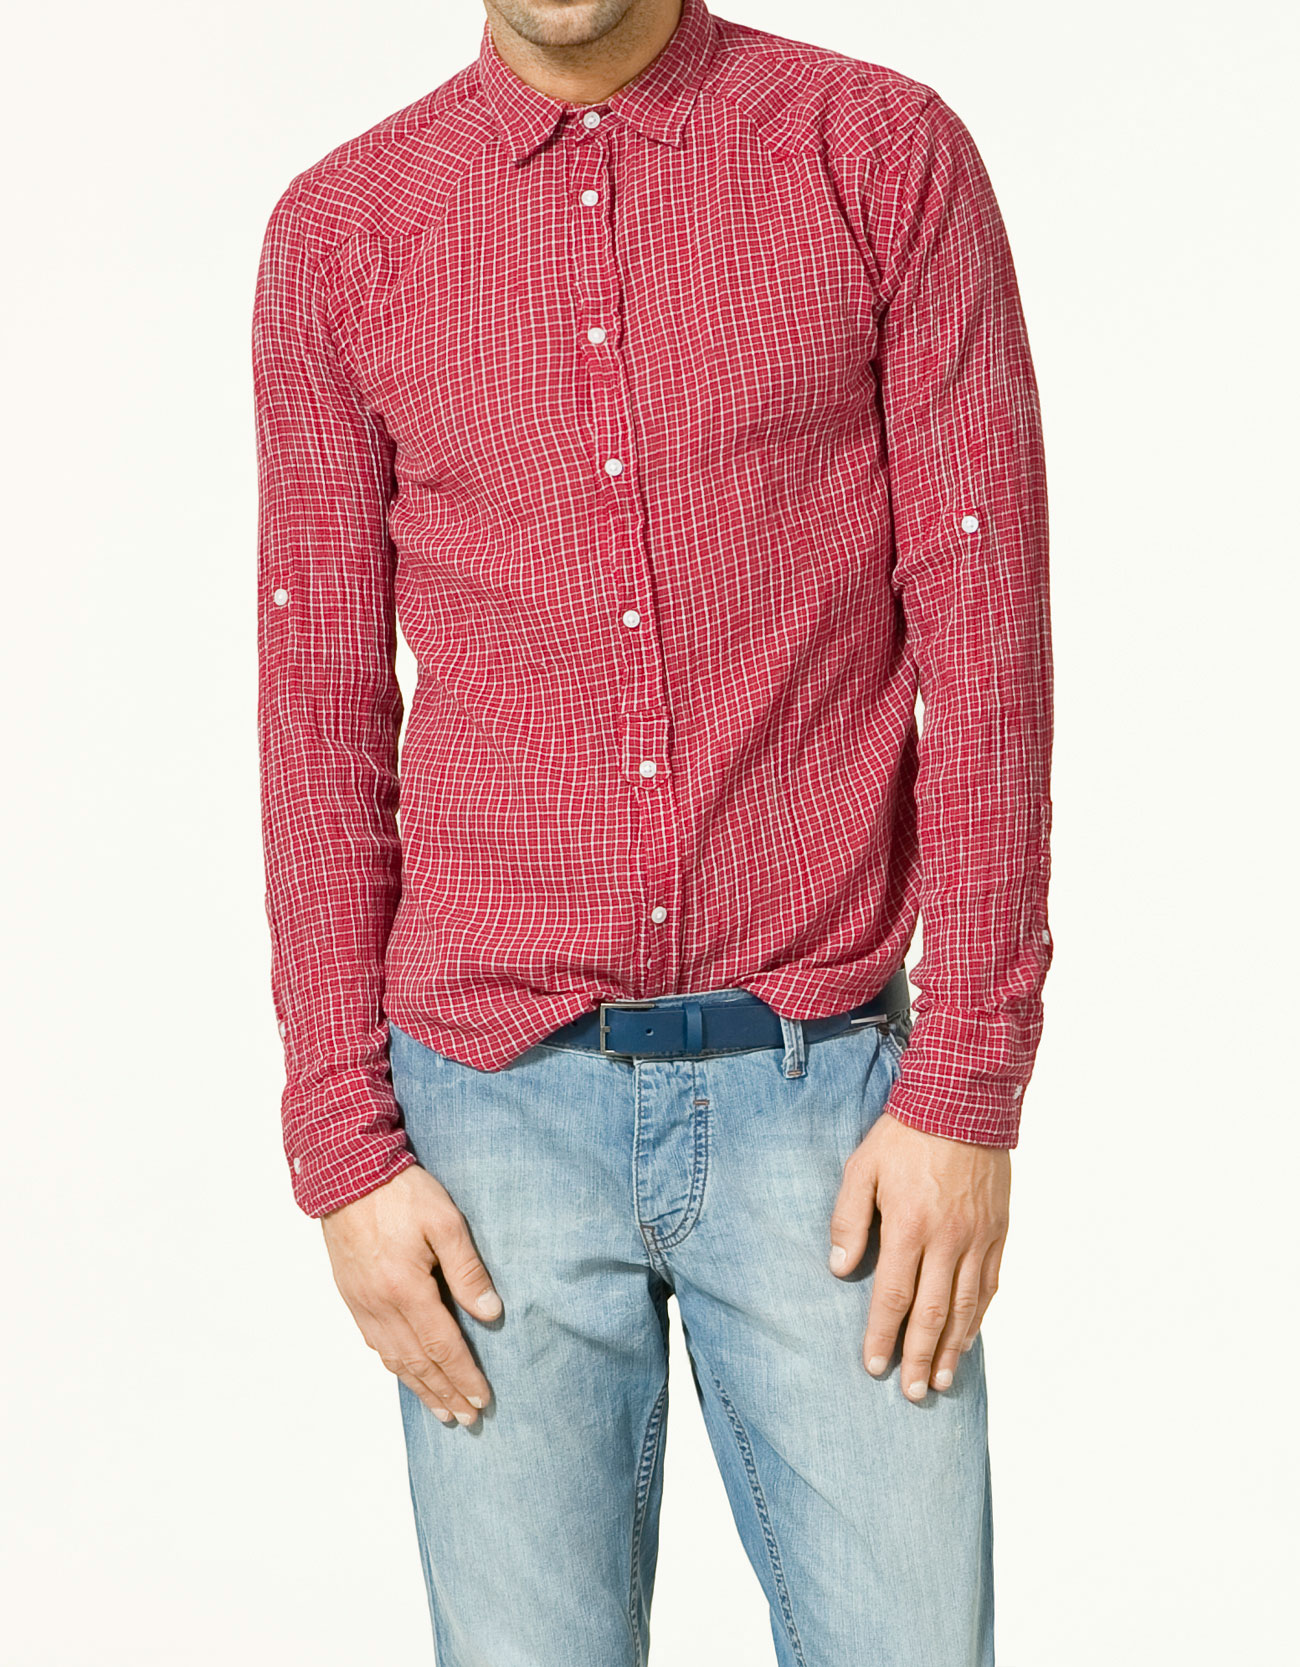 Zara checked cheesecloth shirt in red for men lyst for Zara mens shirts sale